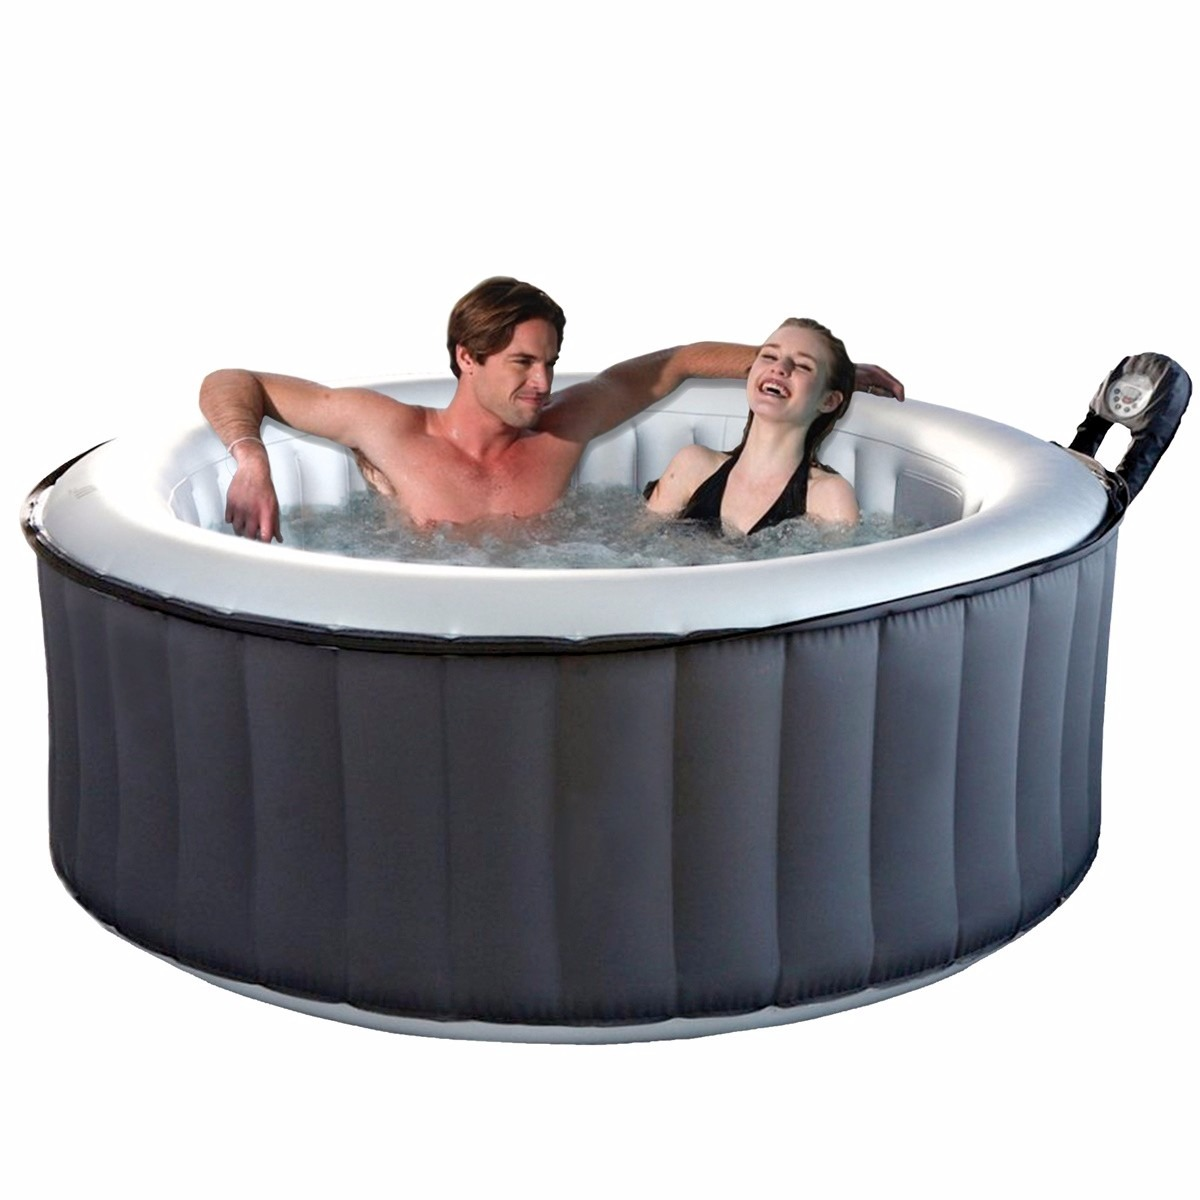 Jacuzzi inflable portatil inflable 4 personas hidromasaje for Jacuzzi exterior 2 personas